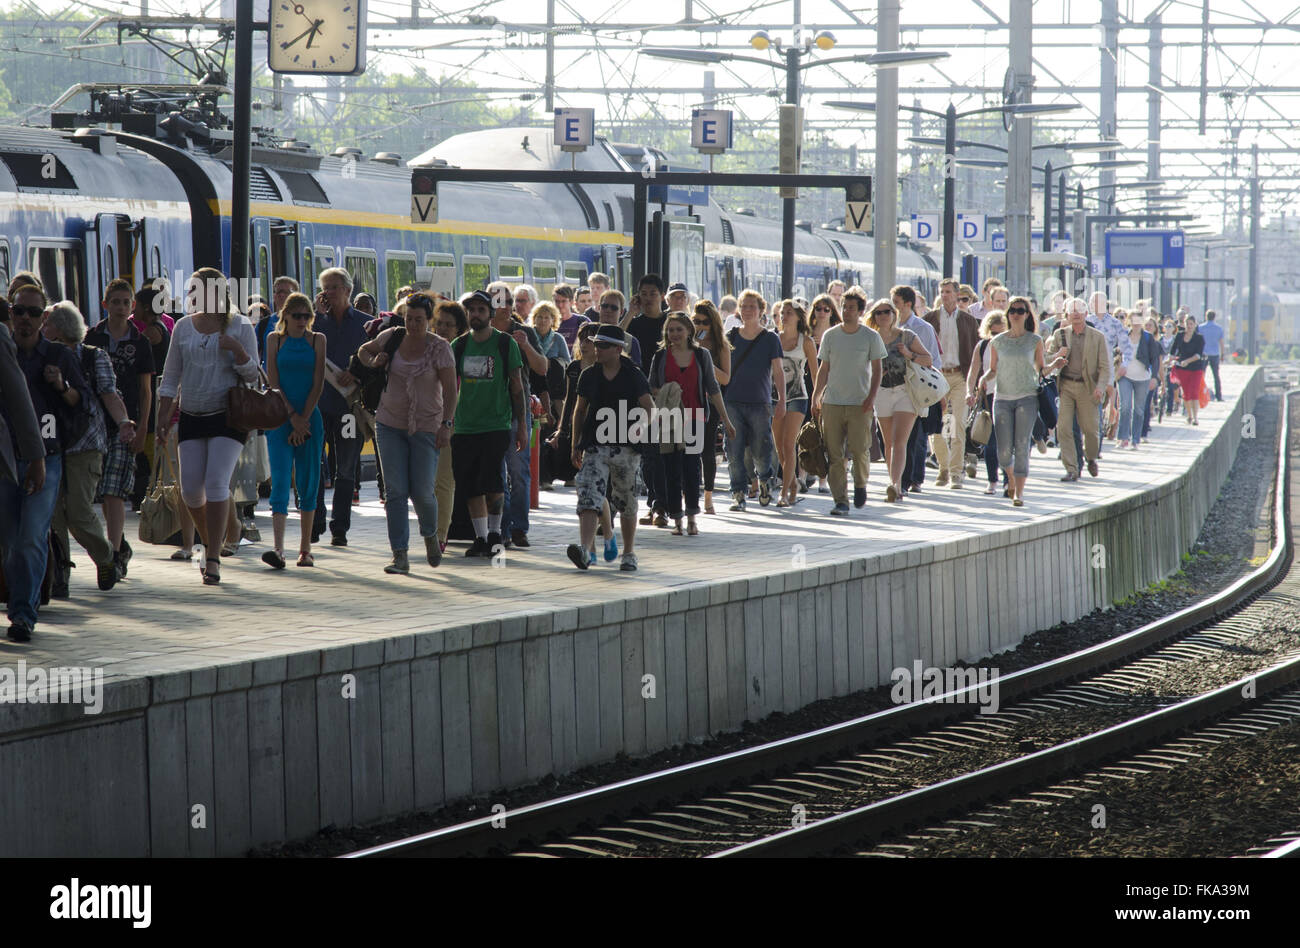 Passengers on the Central railway platform - Centraal Station - Stock Image